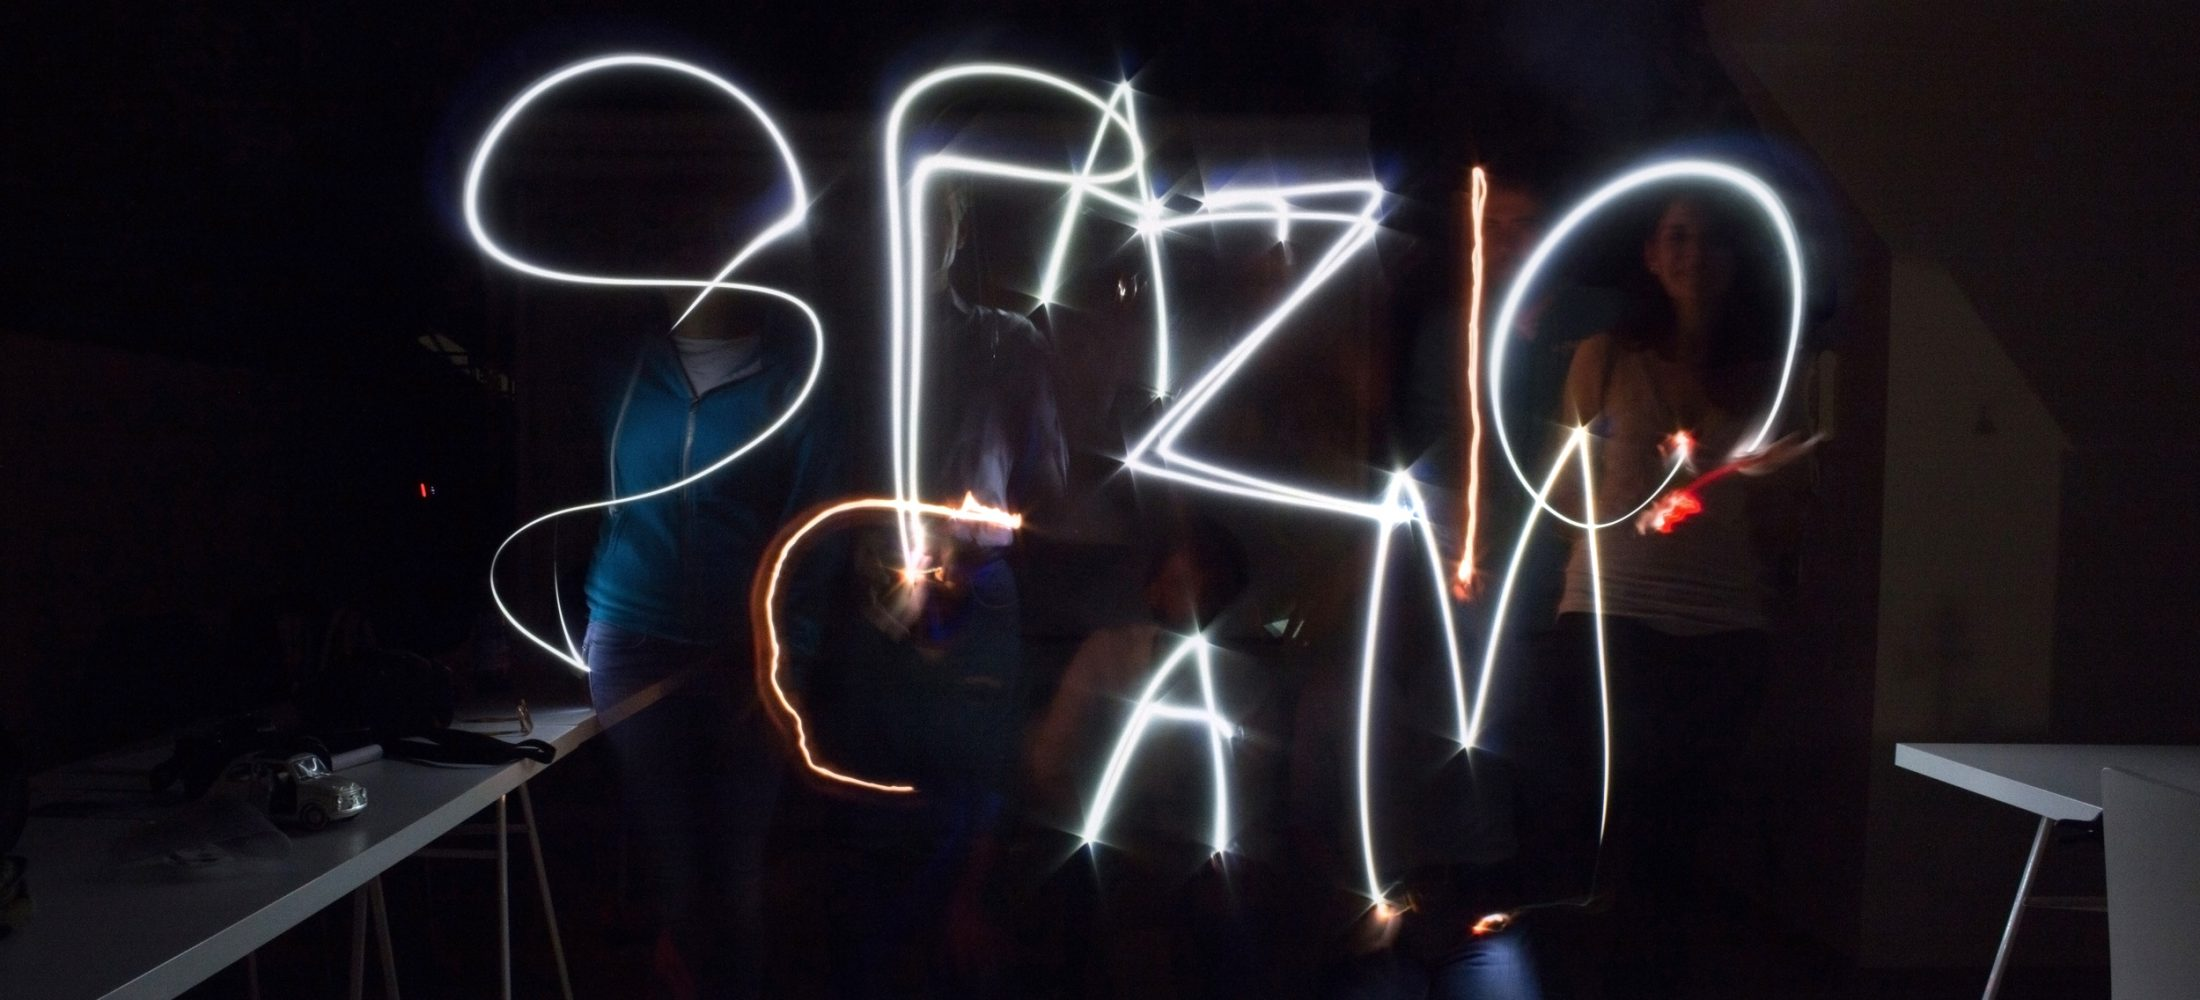 Spazio Cam light painting